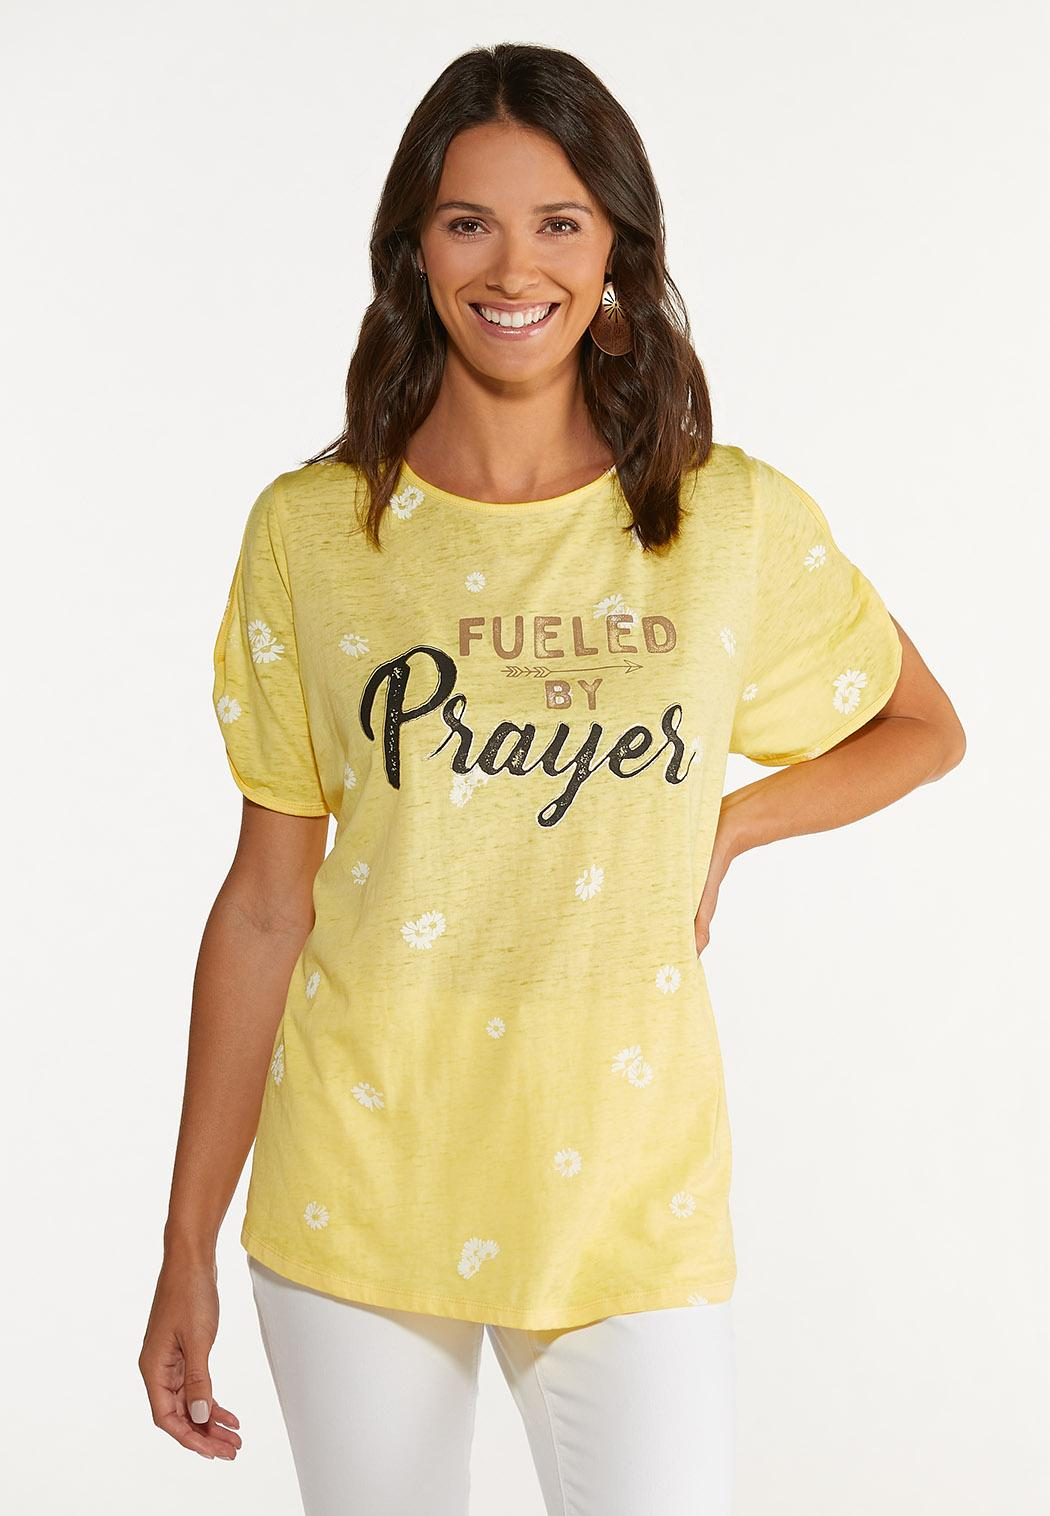 Plus Size Fueled By Prayer Tee